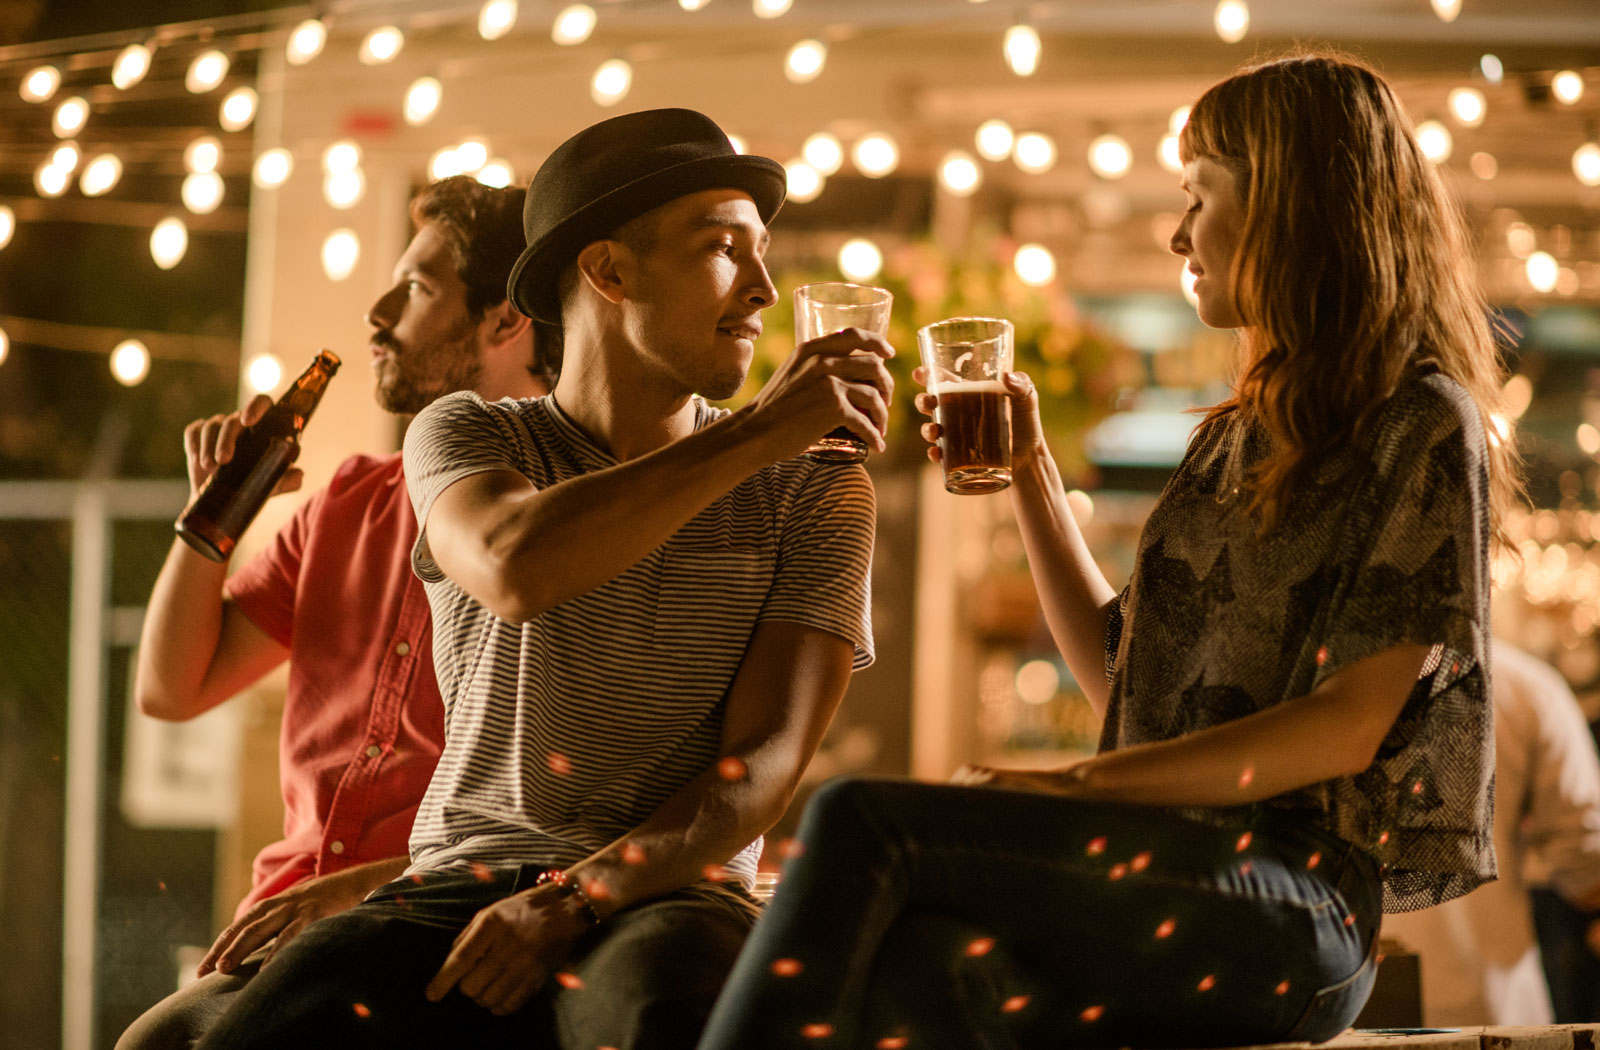 Couple Cheersing with Beer - Top Things to Do in San Diego